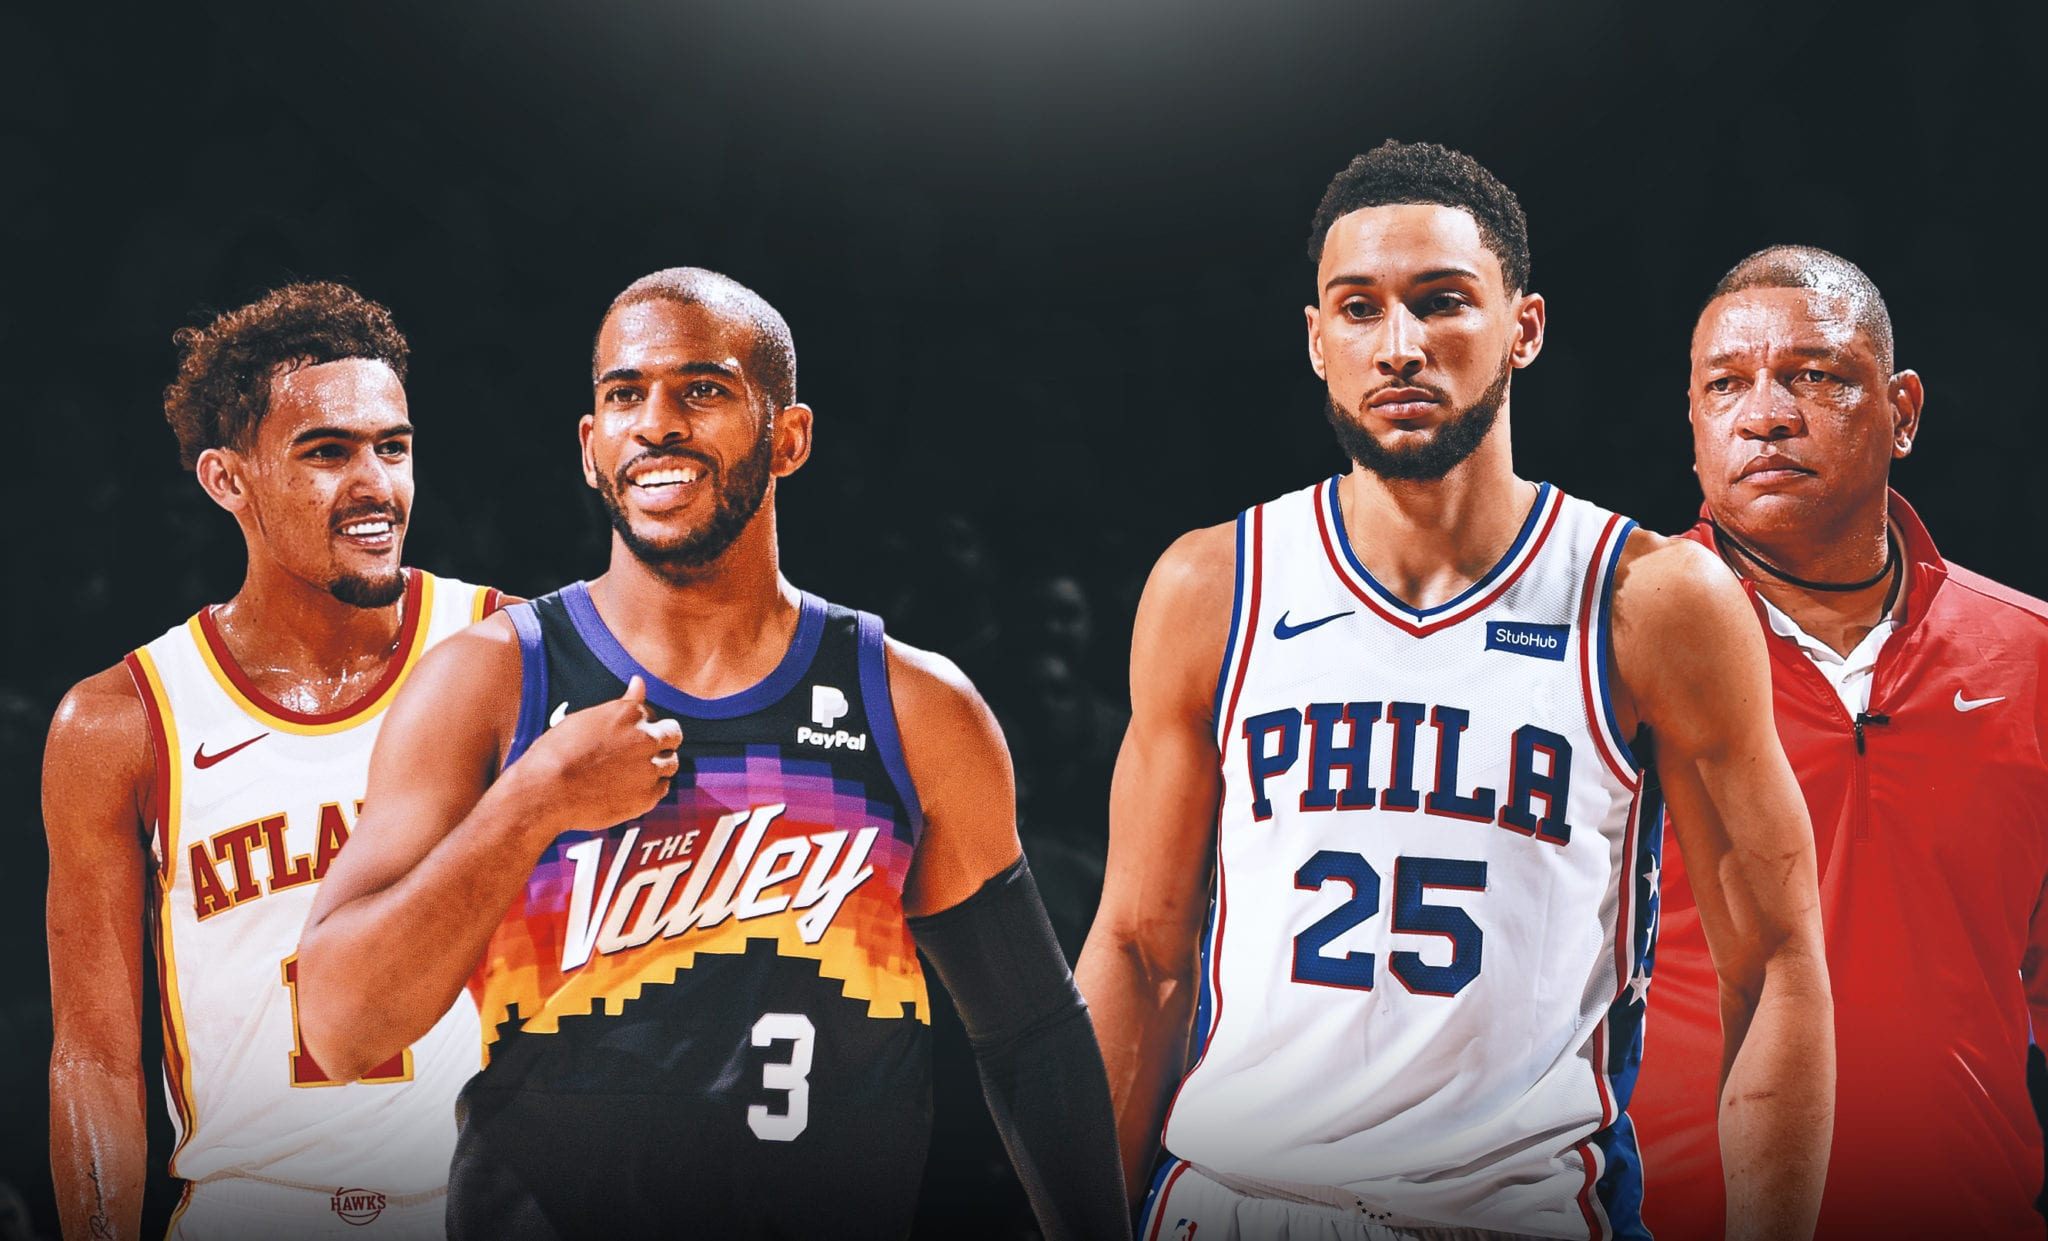 The Winners & Losers of the 2021 NBA Playoffs